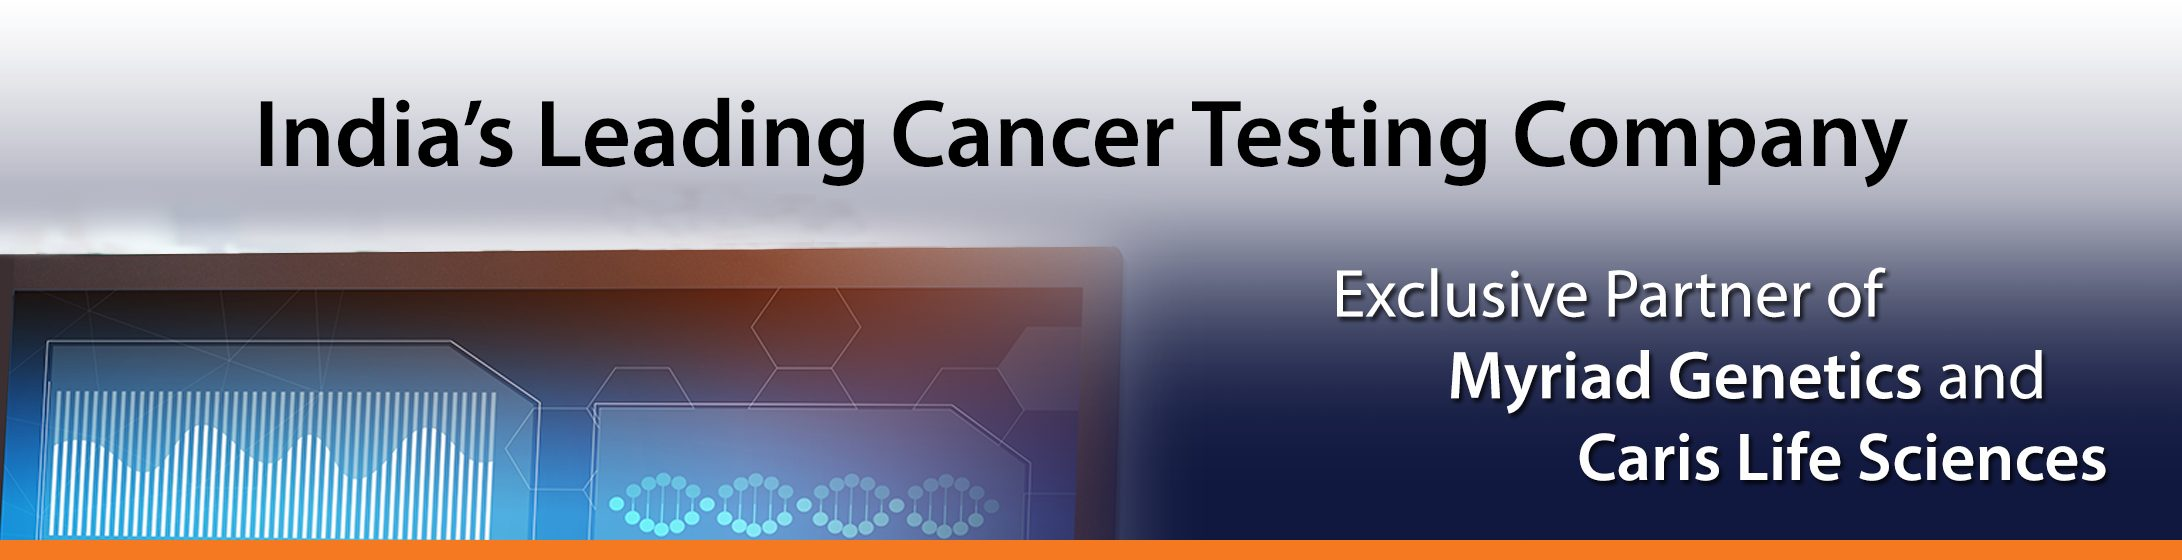 Best Cancer Genomics and Testing Company in India